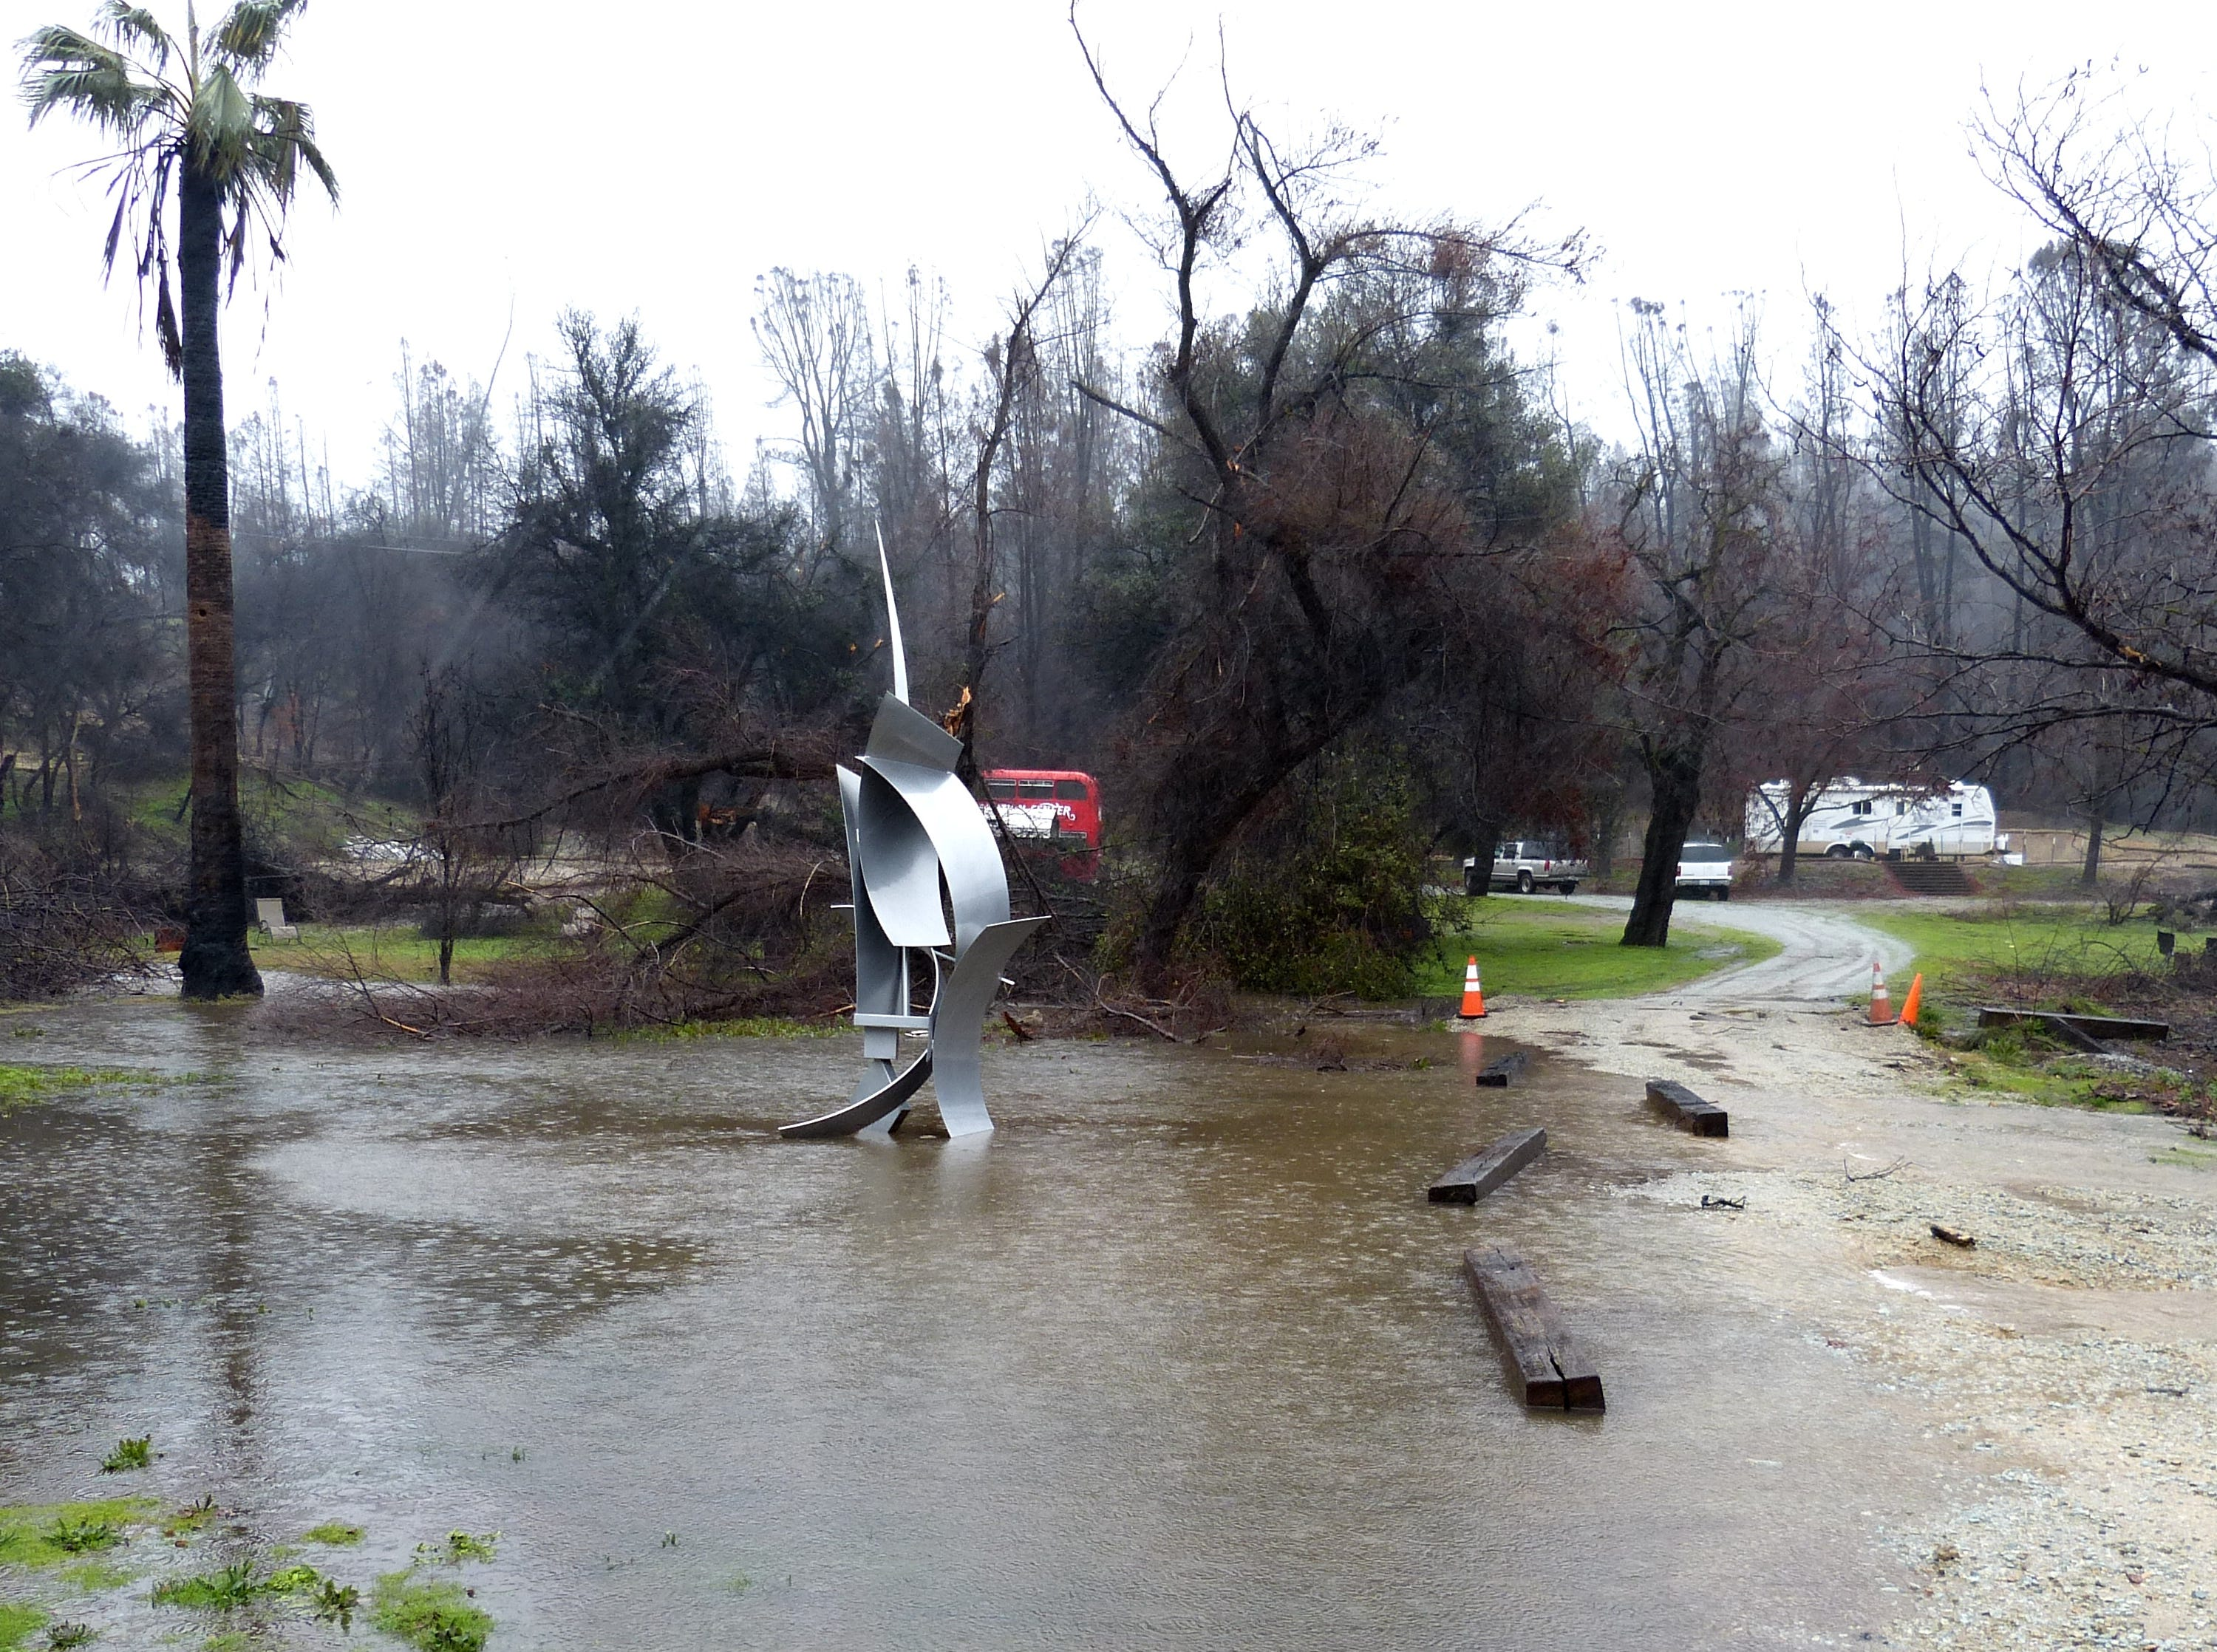 Rain flooded an area in the town of Shasta on Tuesday.